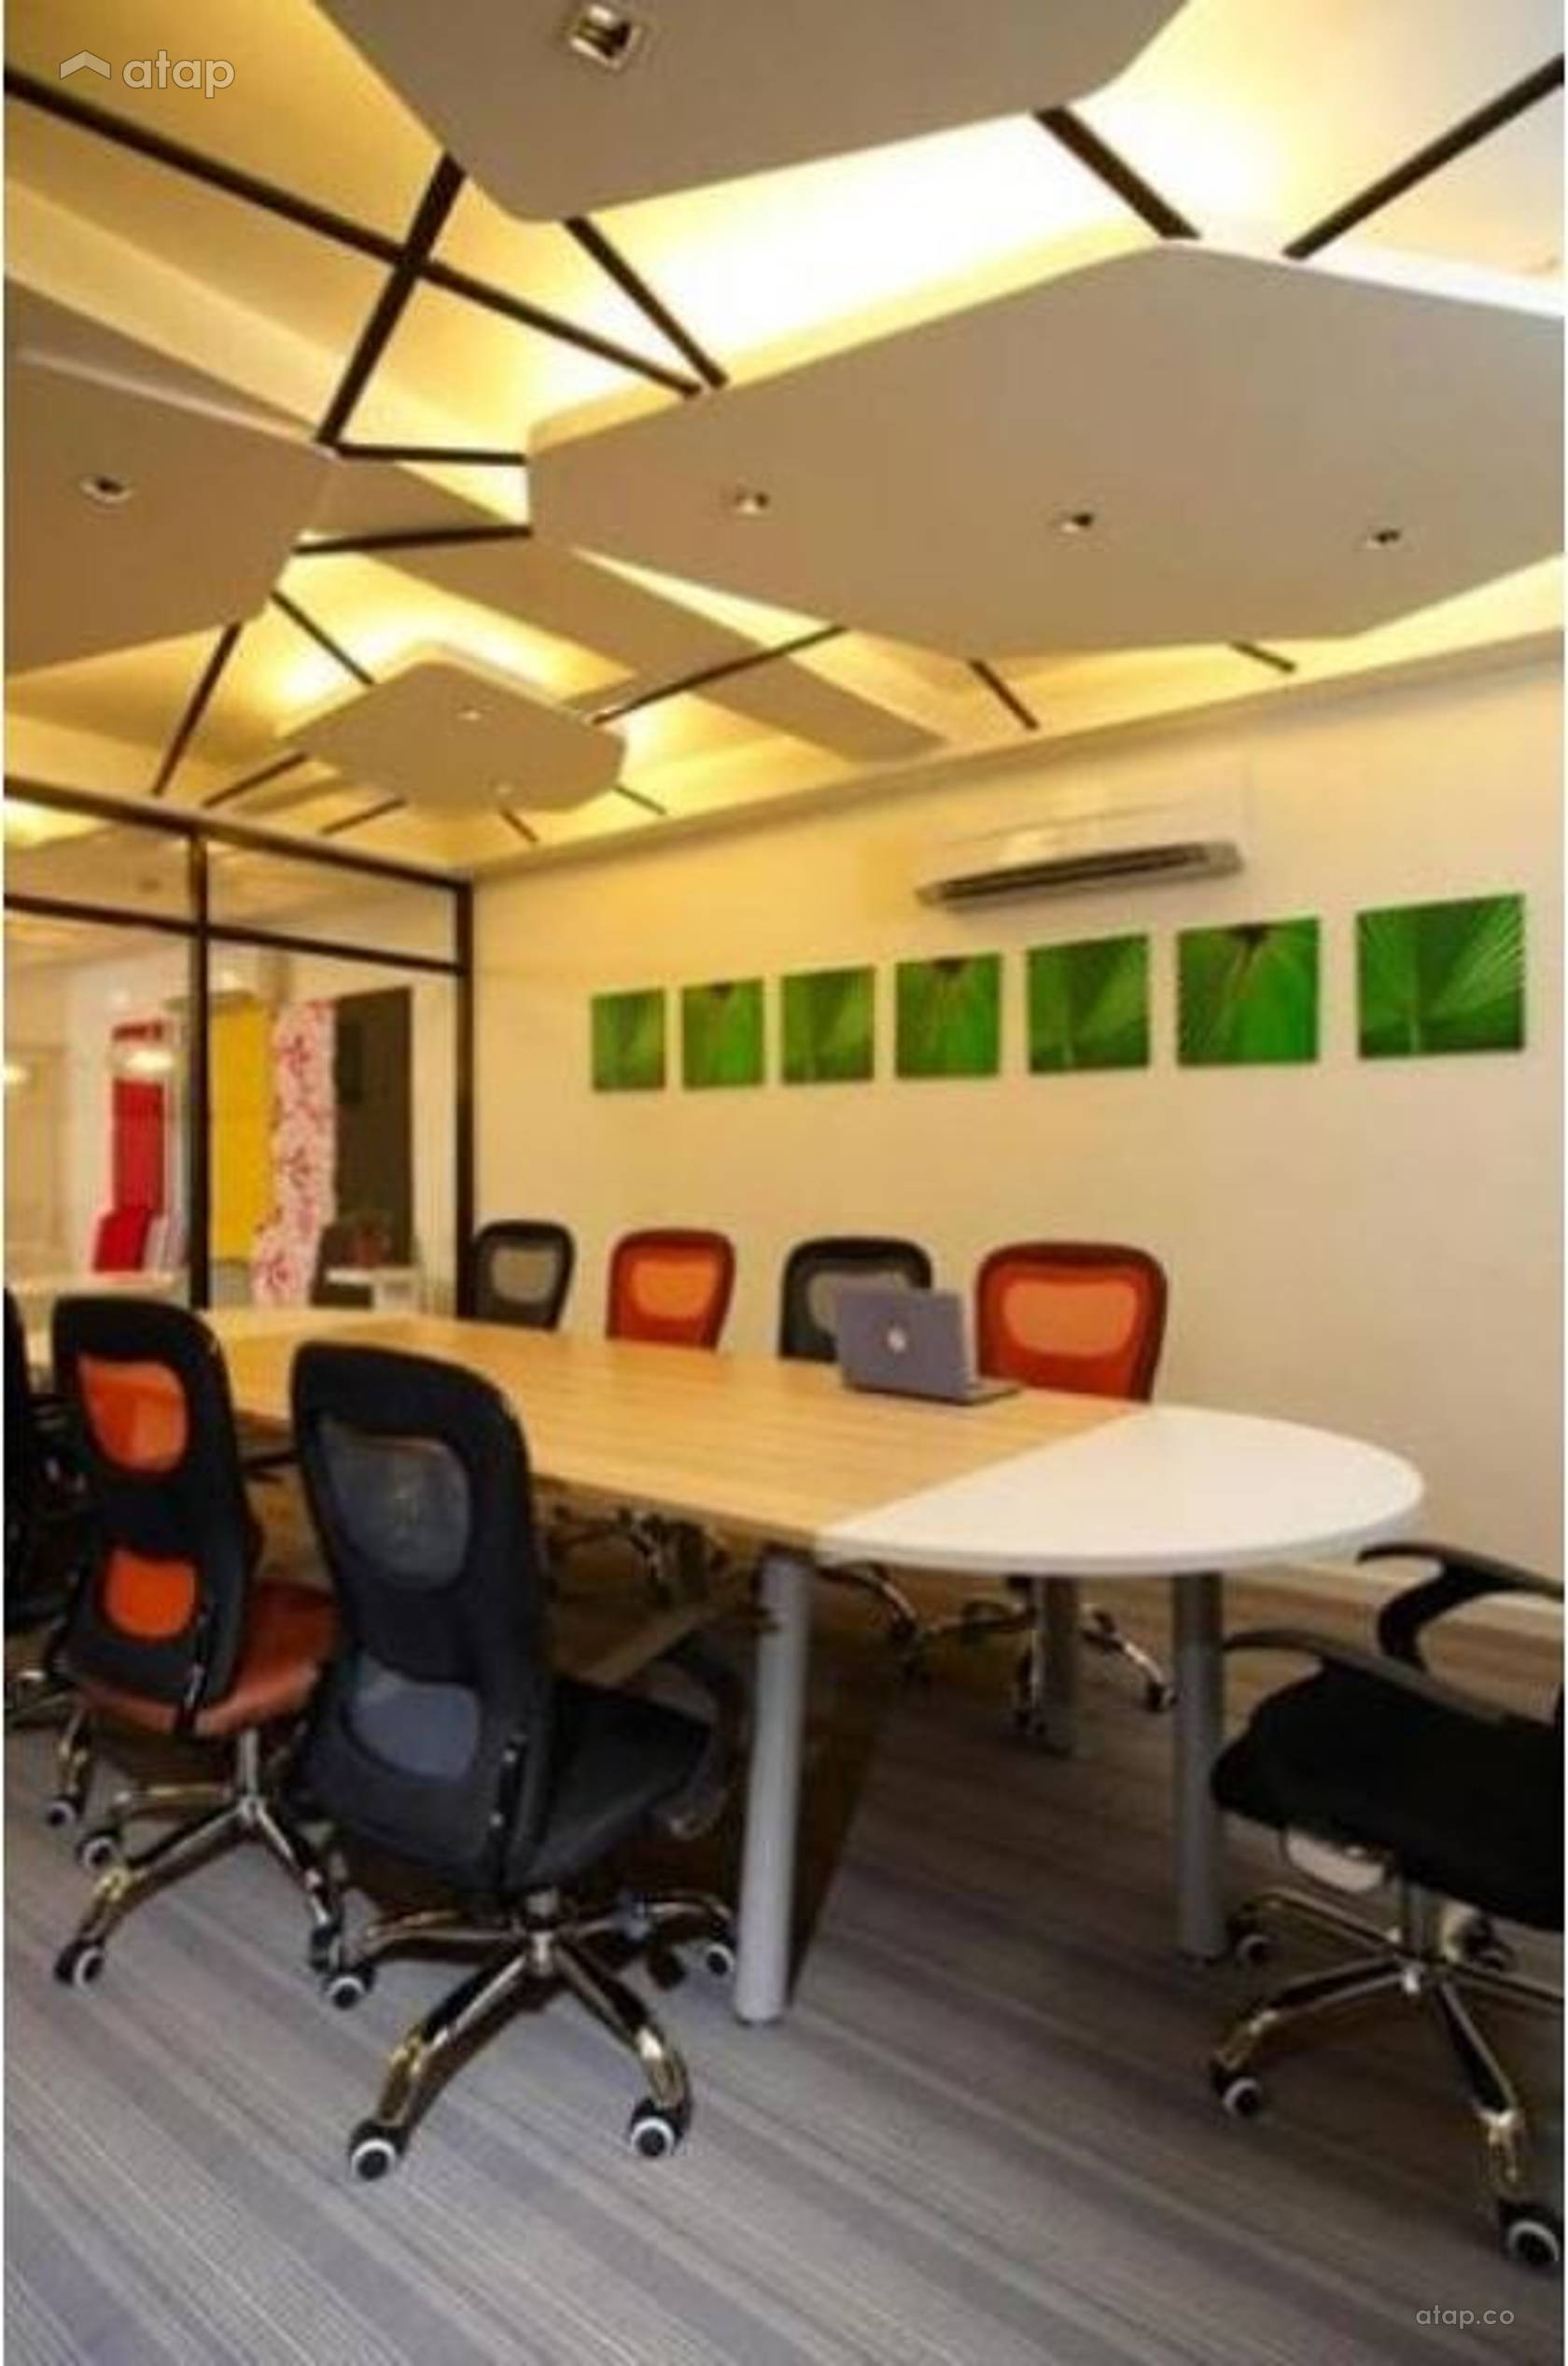 Propel Synergy interior design renovation ideas photos and price in